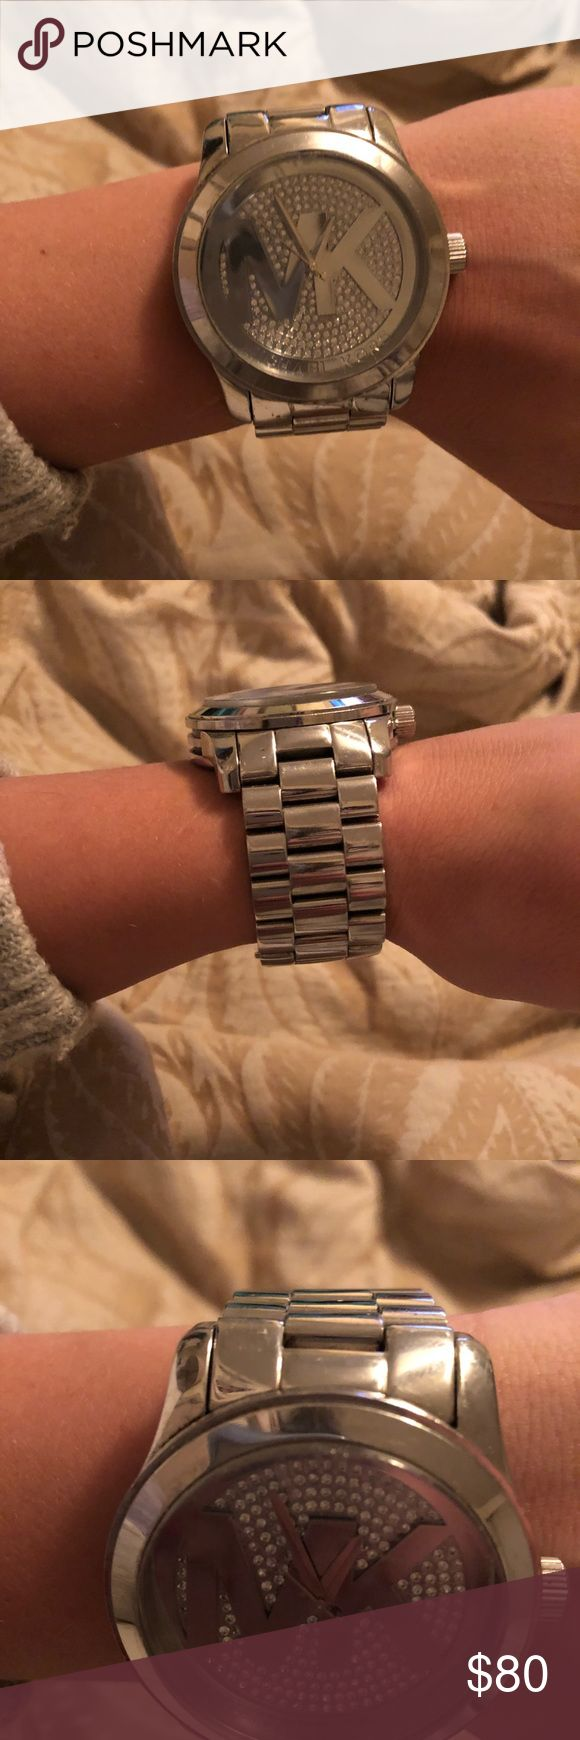 Michael Kors Silver Watch This has been loved! This watch is perfect to wear on an everyday basis! It does have some scratches and knicks on the face of the watch which are pictured. I did have some links taken out. Overall the watch is still in pretty good condition and when wearing you can't notice the scratches! Selling due to me not wearing it anymore due to getting a new one! Michael Kors Accessories Watches